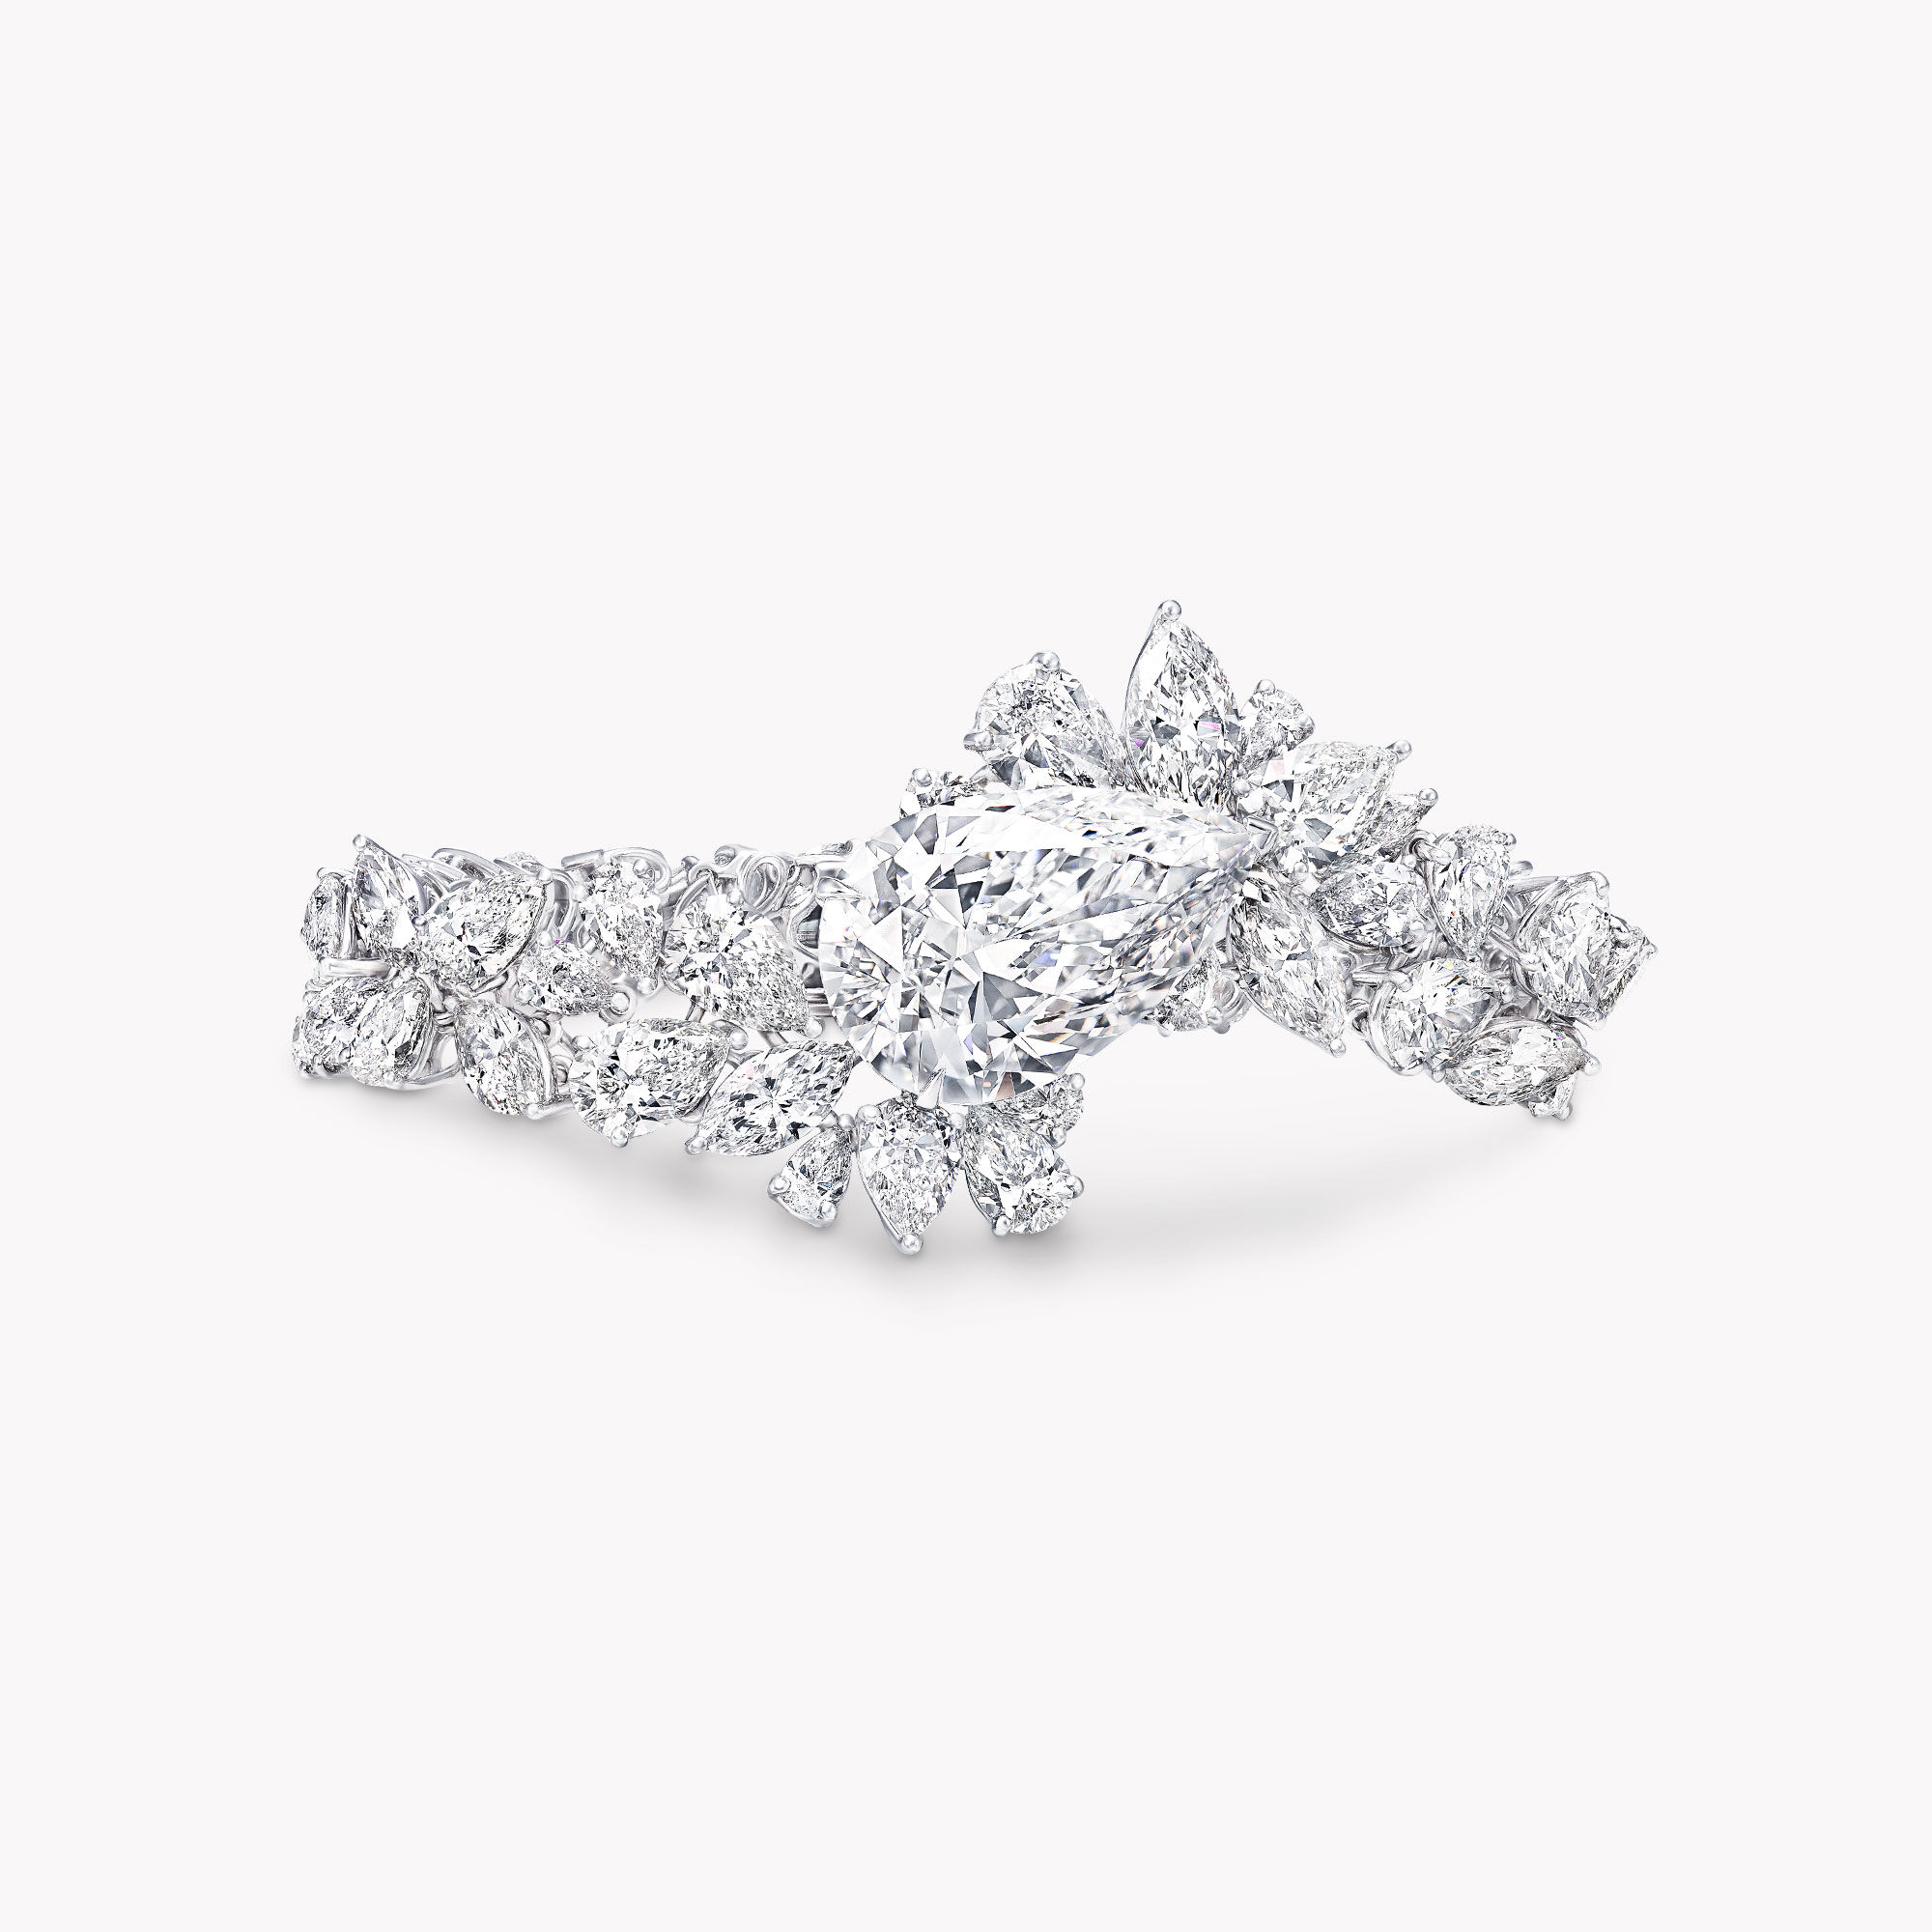 A Graff white diamond high jewellery bracelet featuring a pear shape diamond